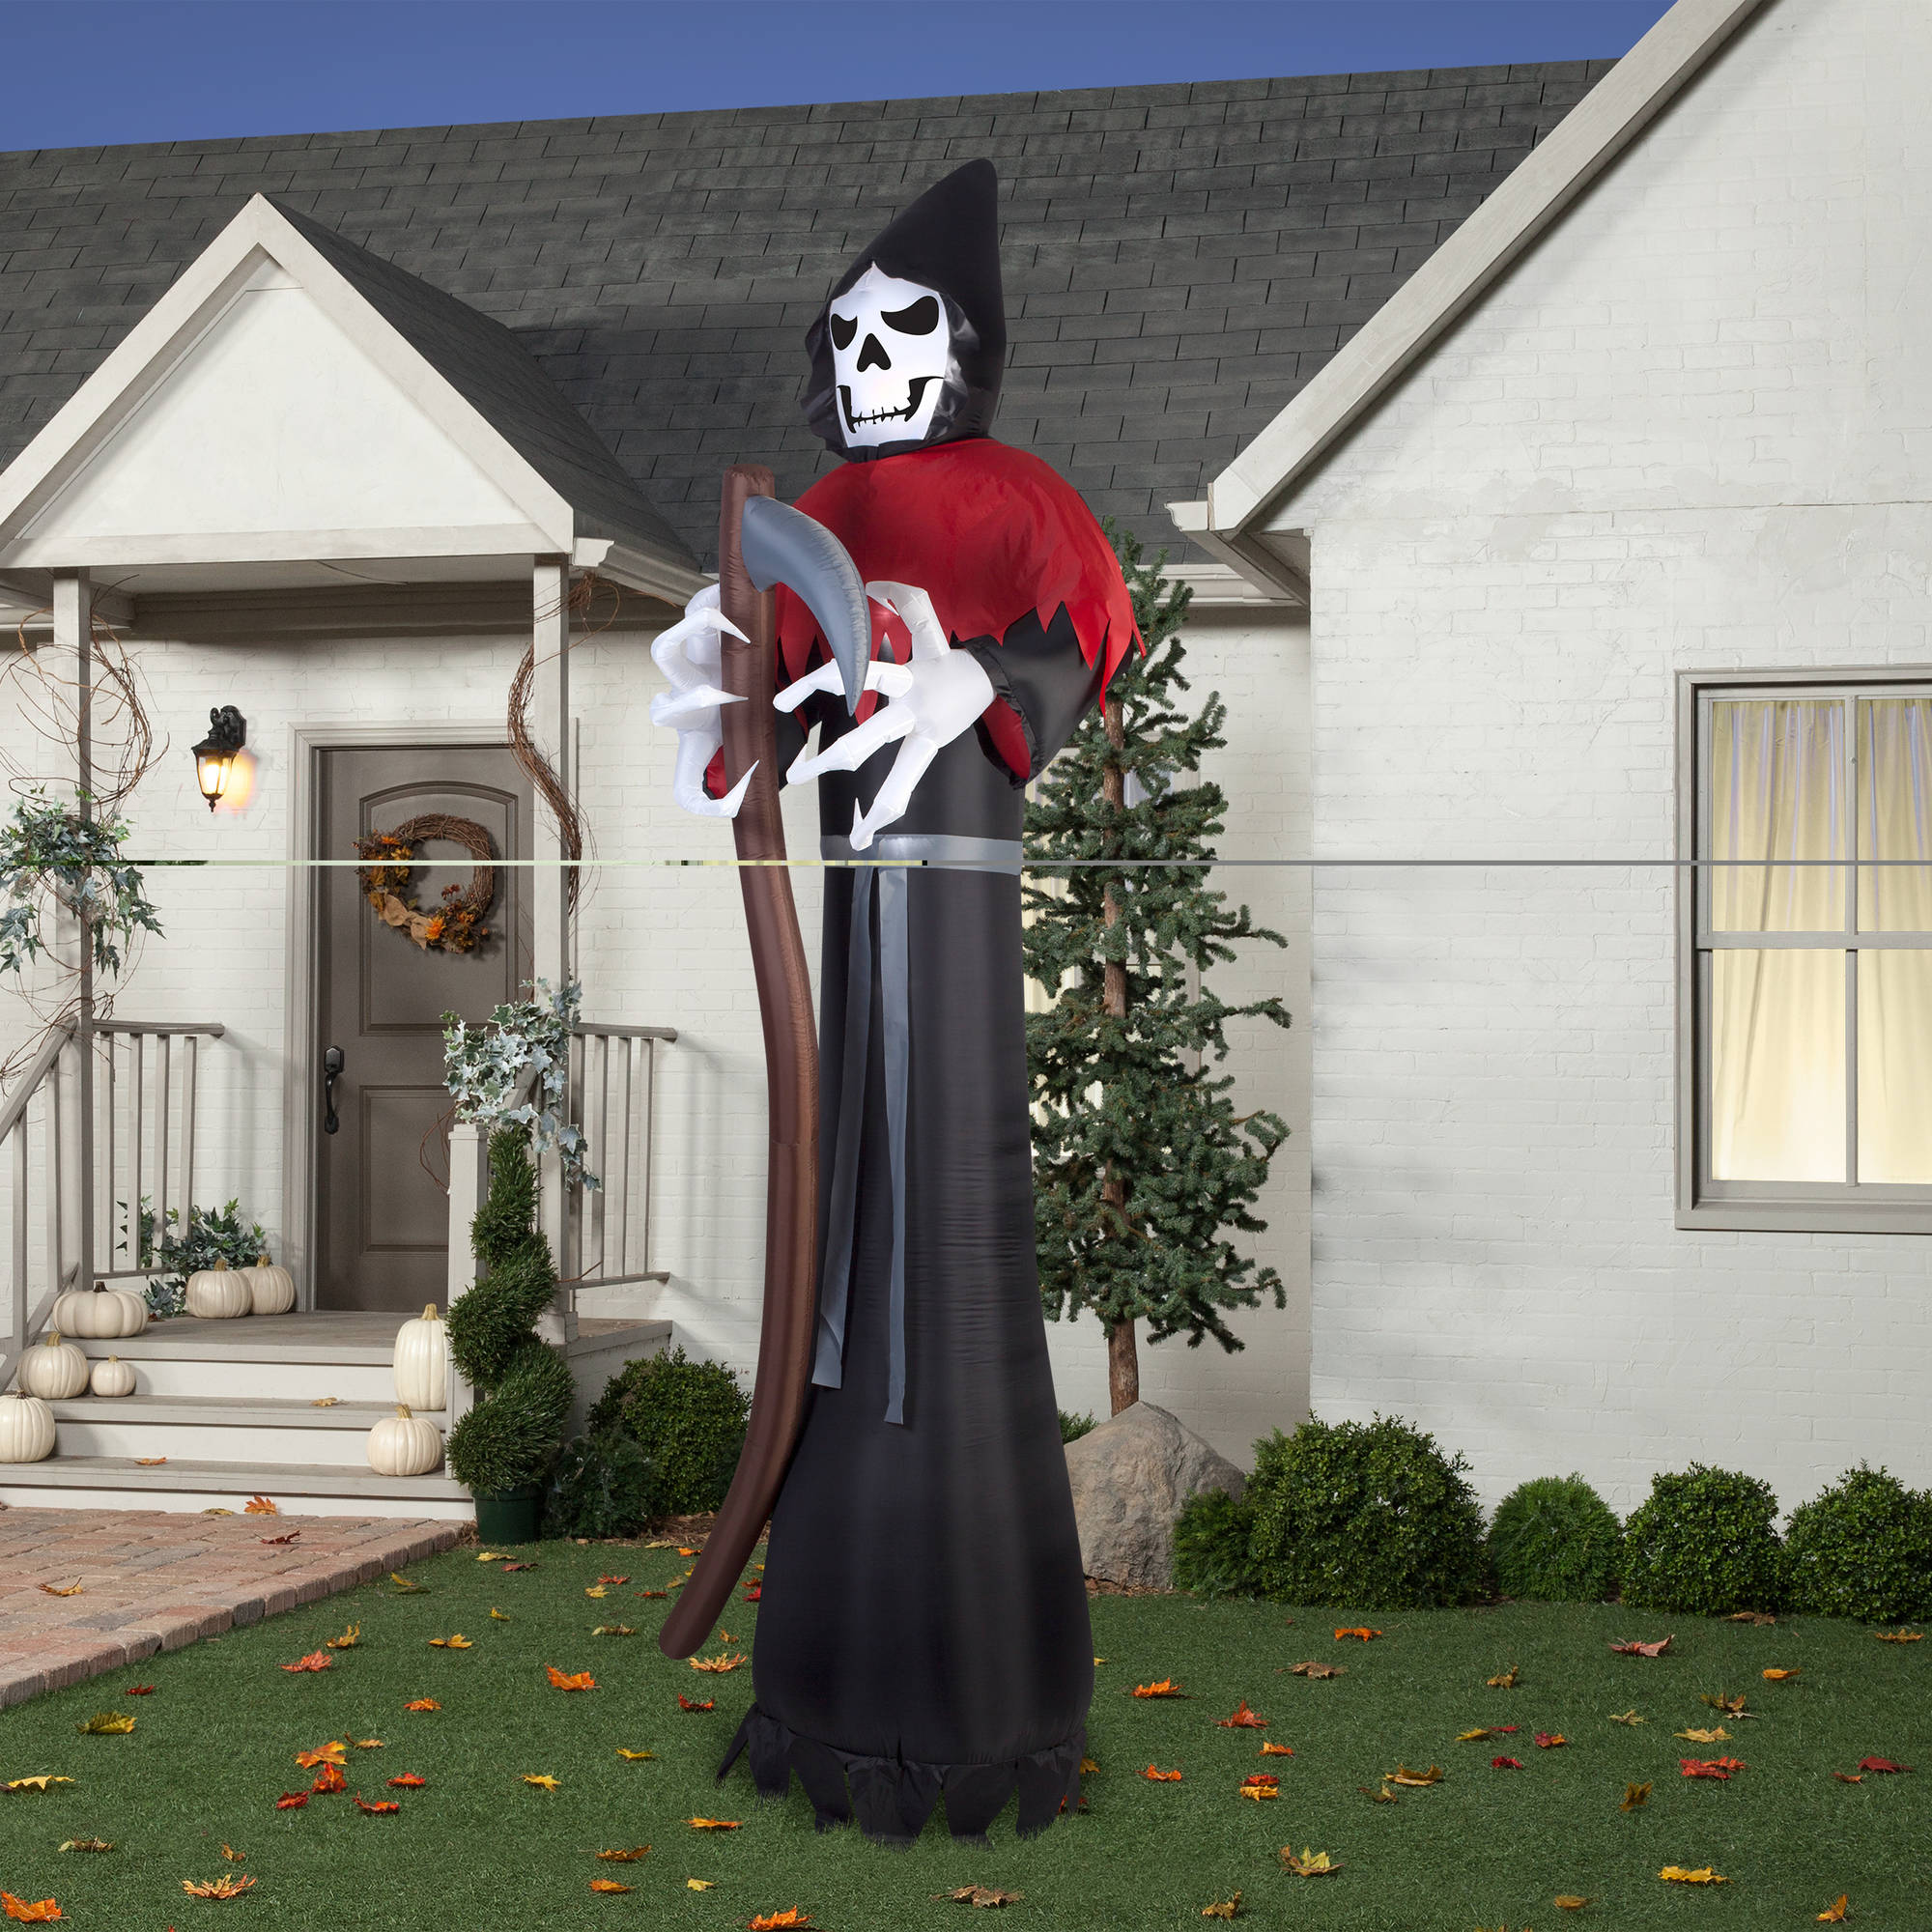 Affordable Halloween Shopping From Walmart.com